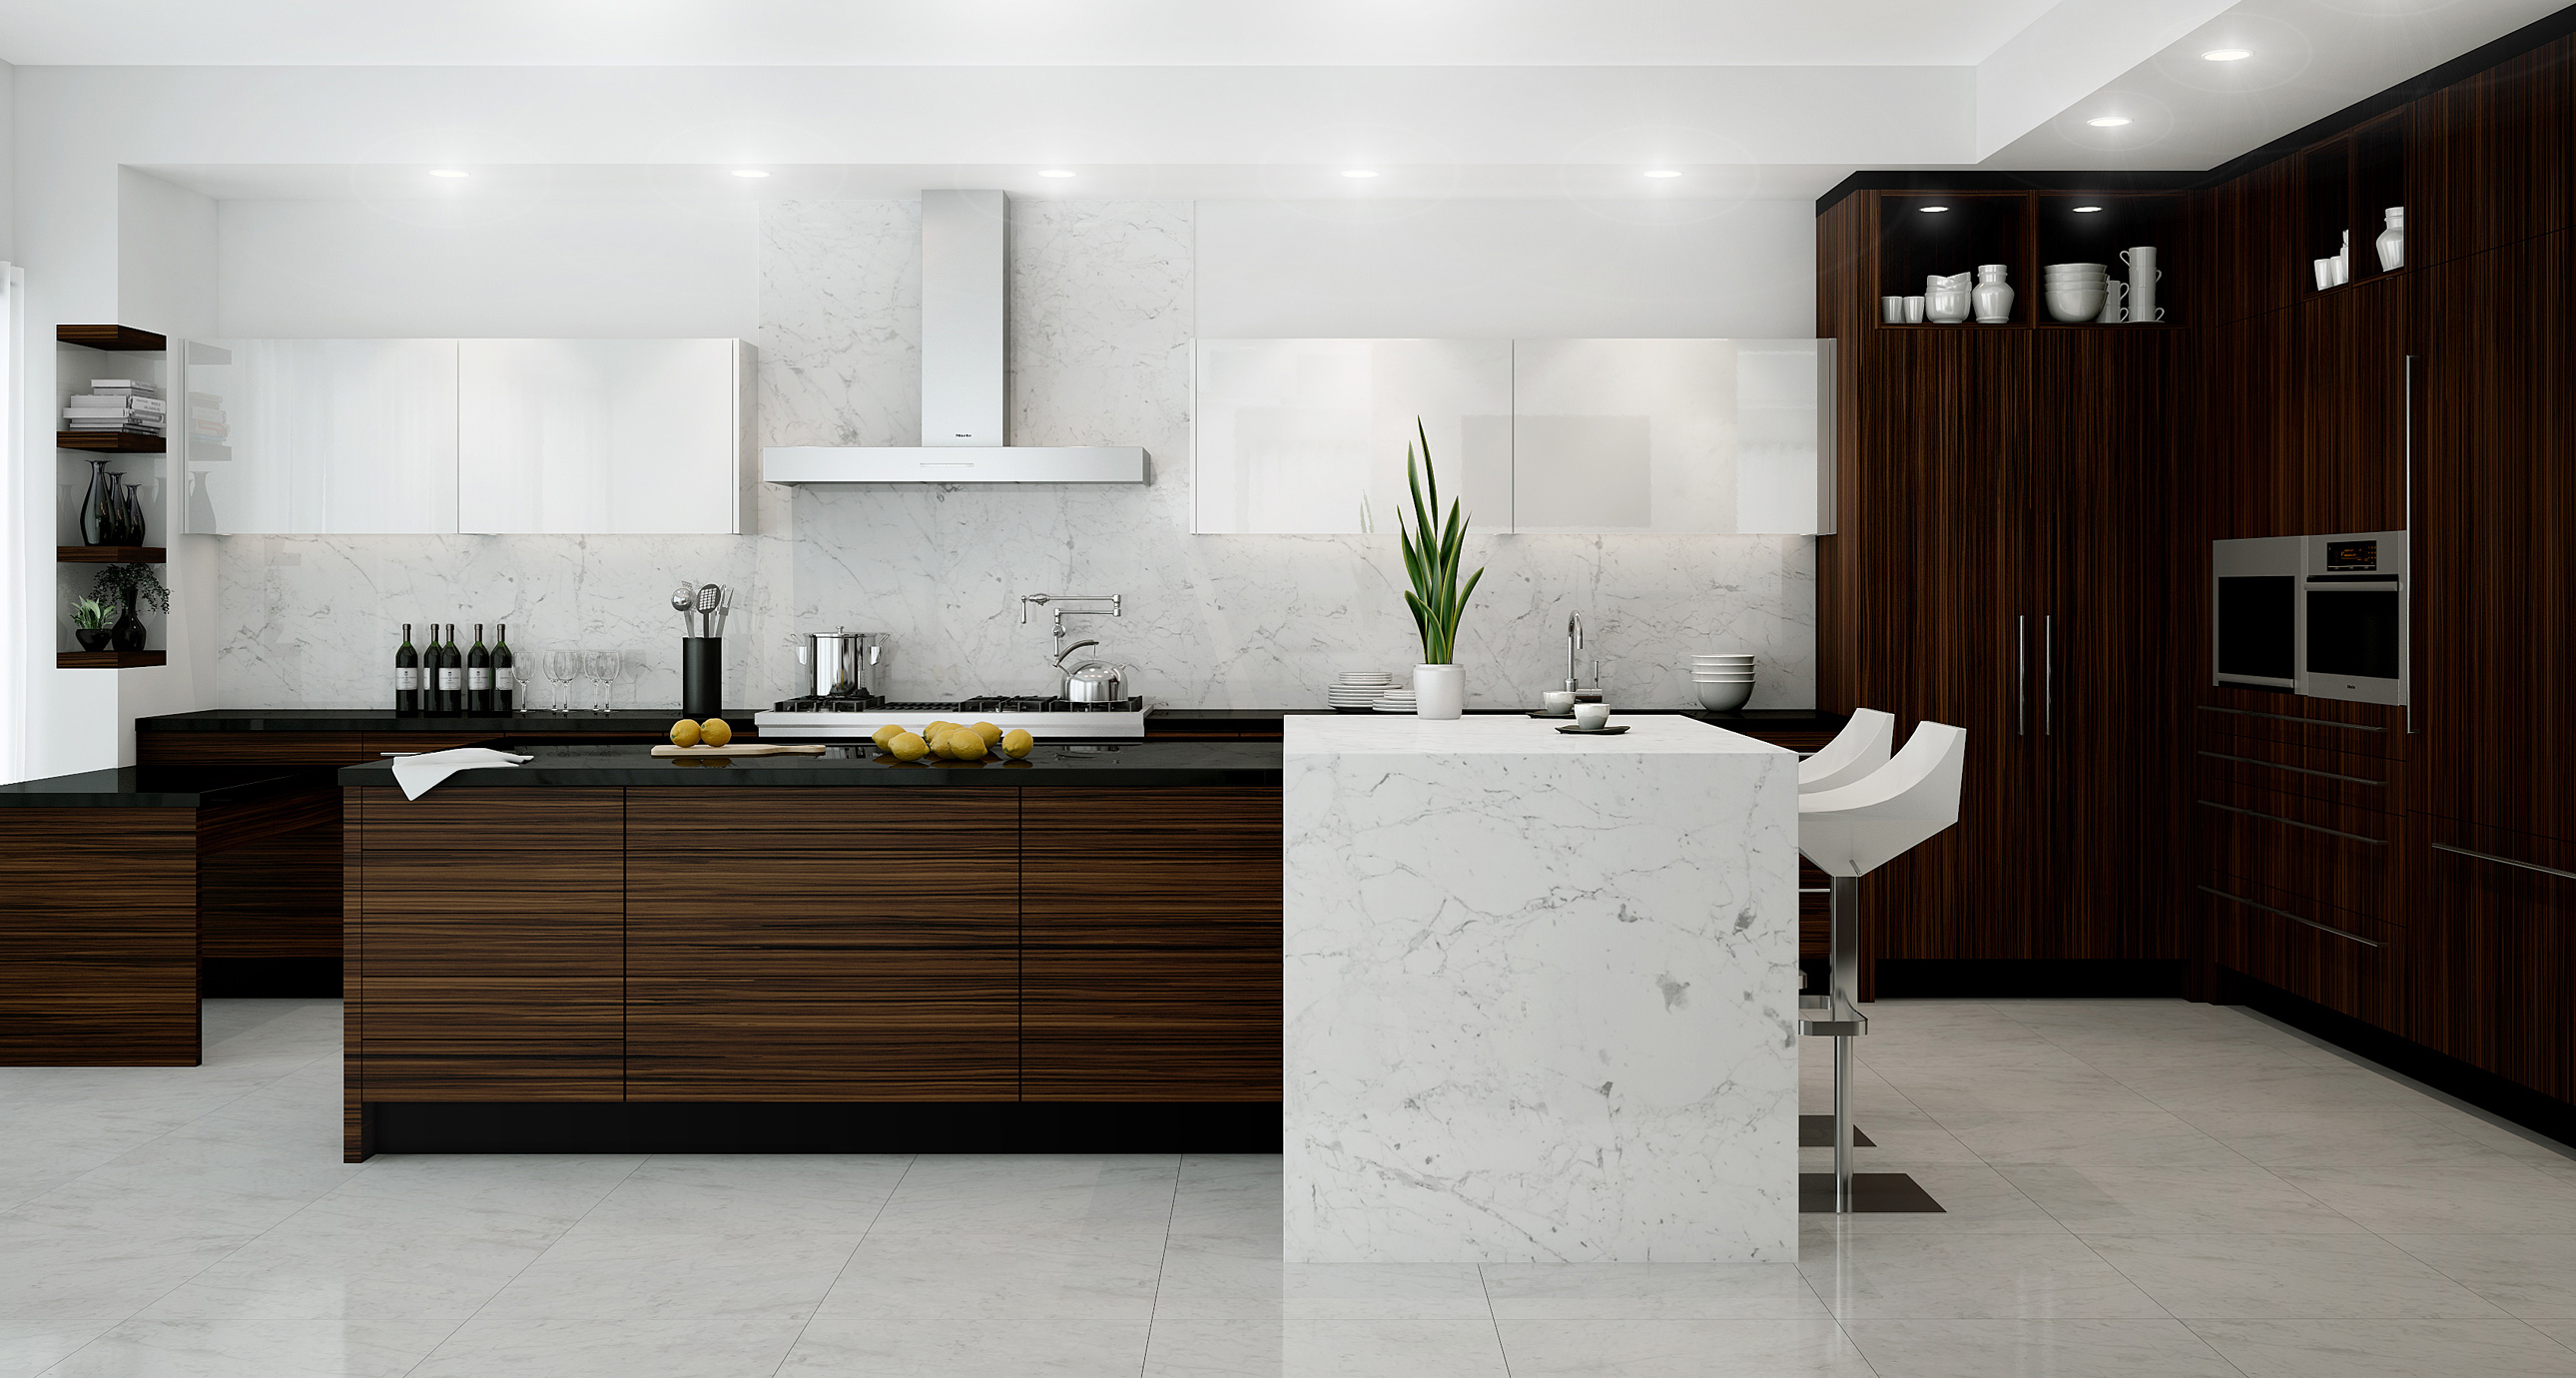 Sleek By Nature Downsview Kitchens And Fine Custom